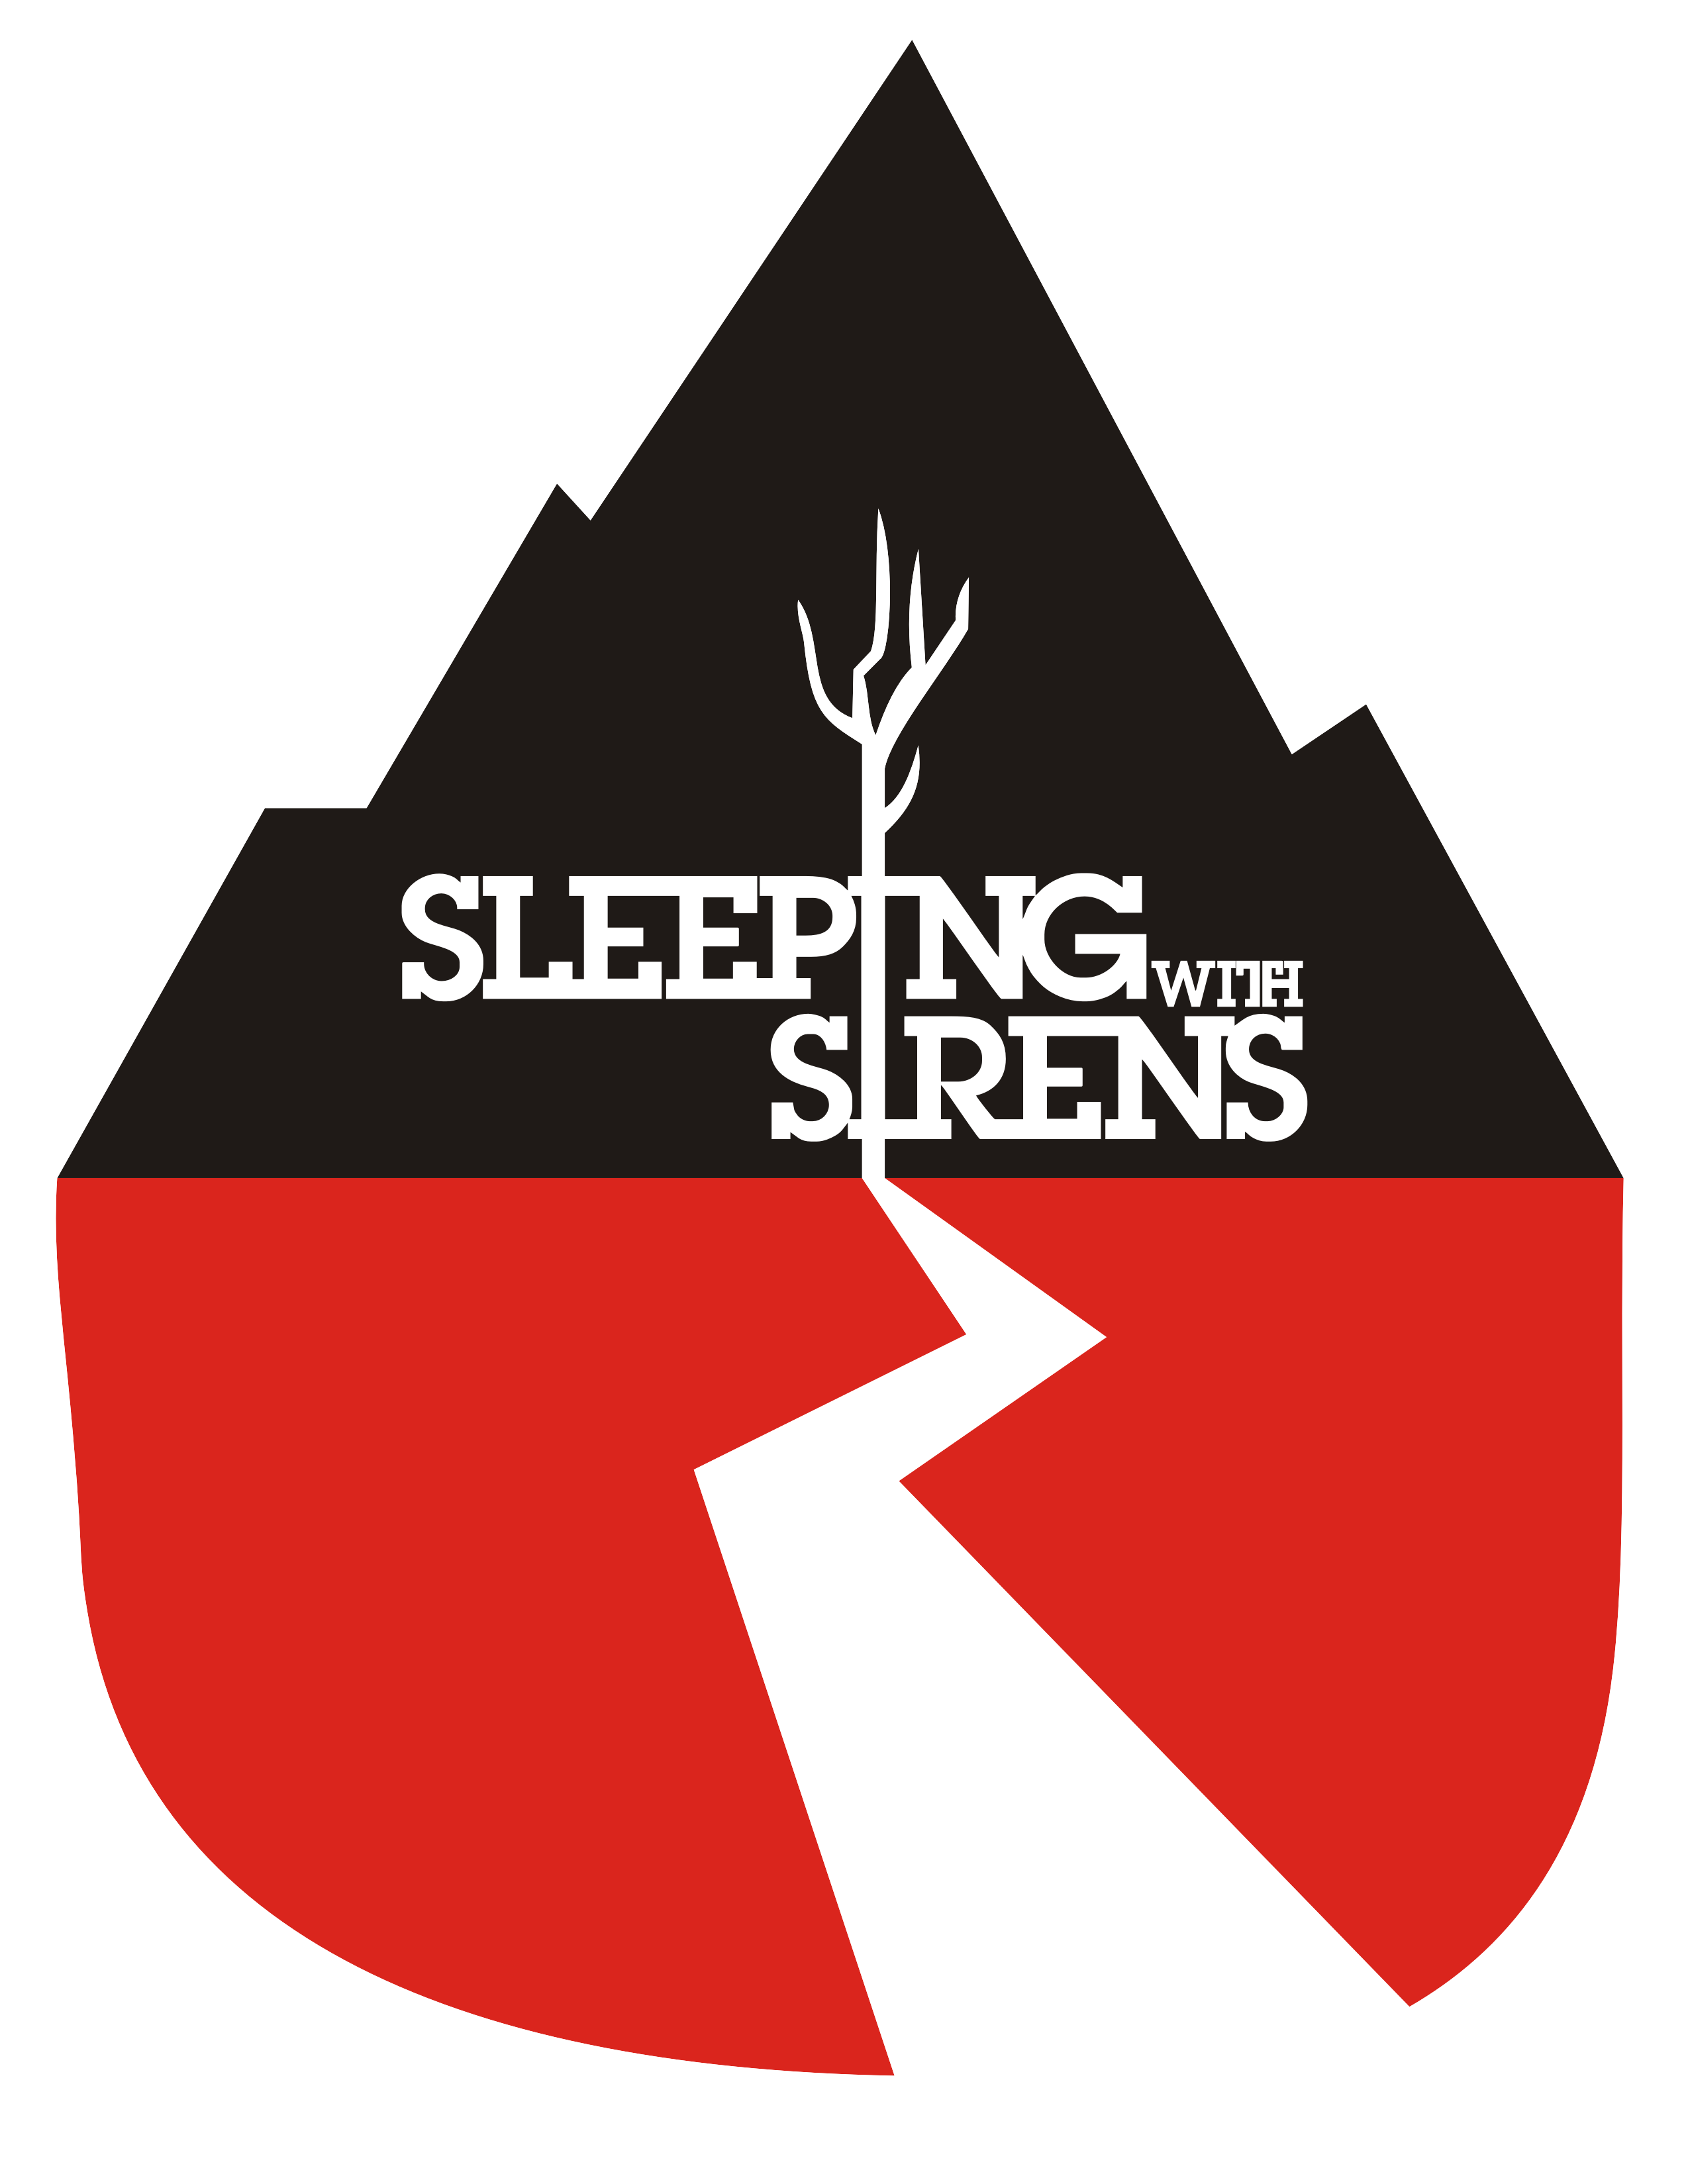 Sleeping With Sirens [ Album Cover ] by Fachrezy on DeviantArt